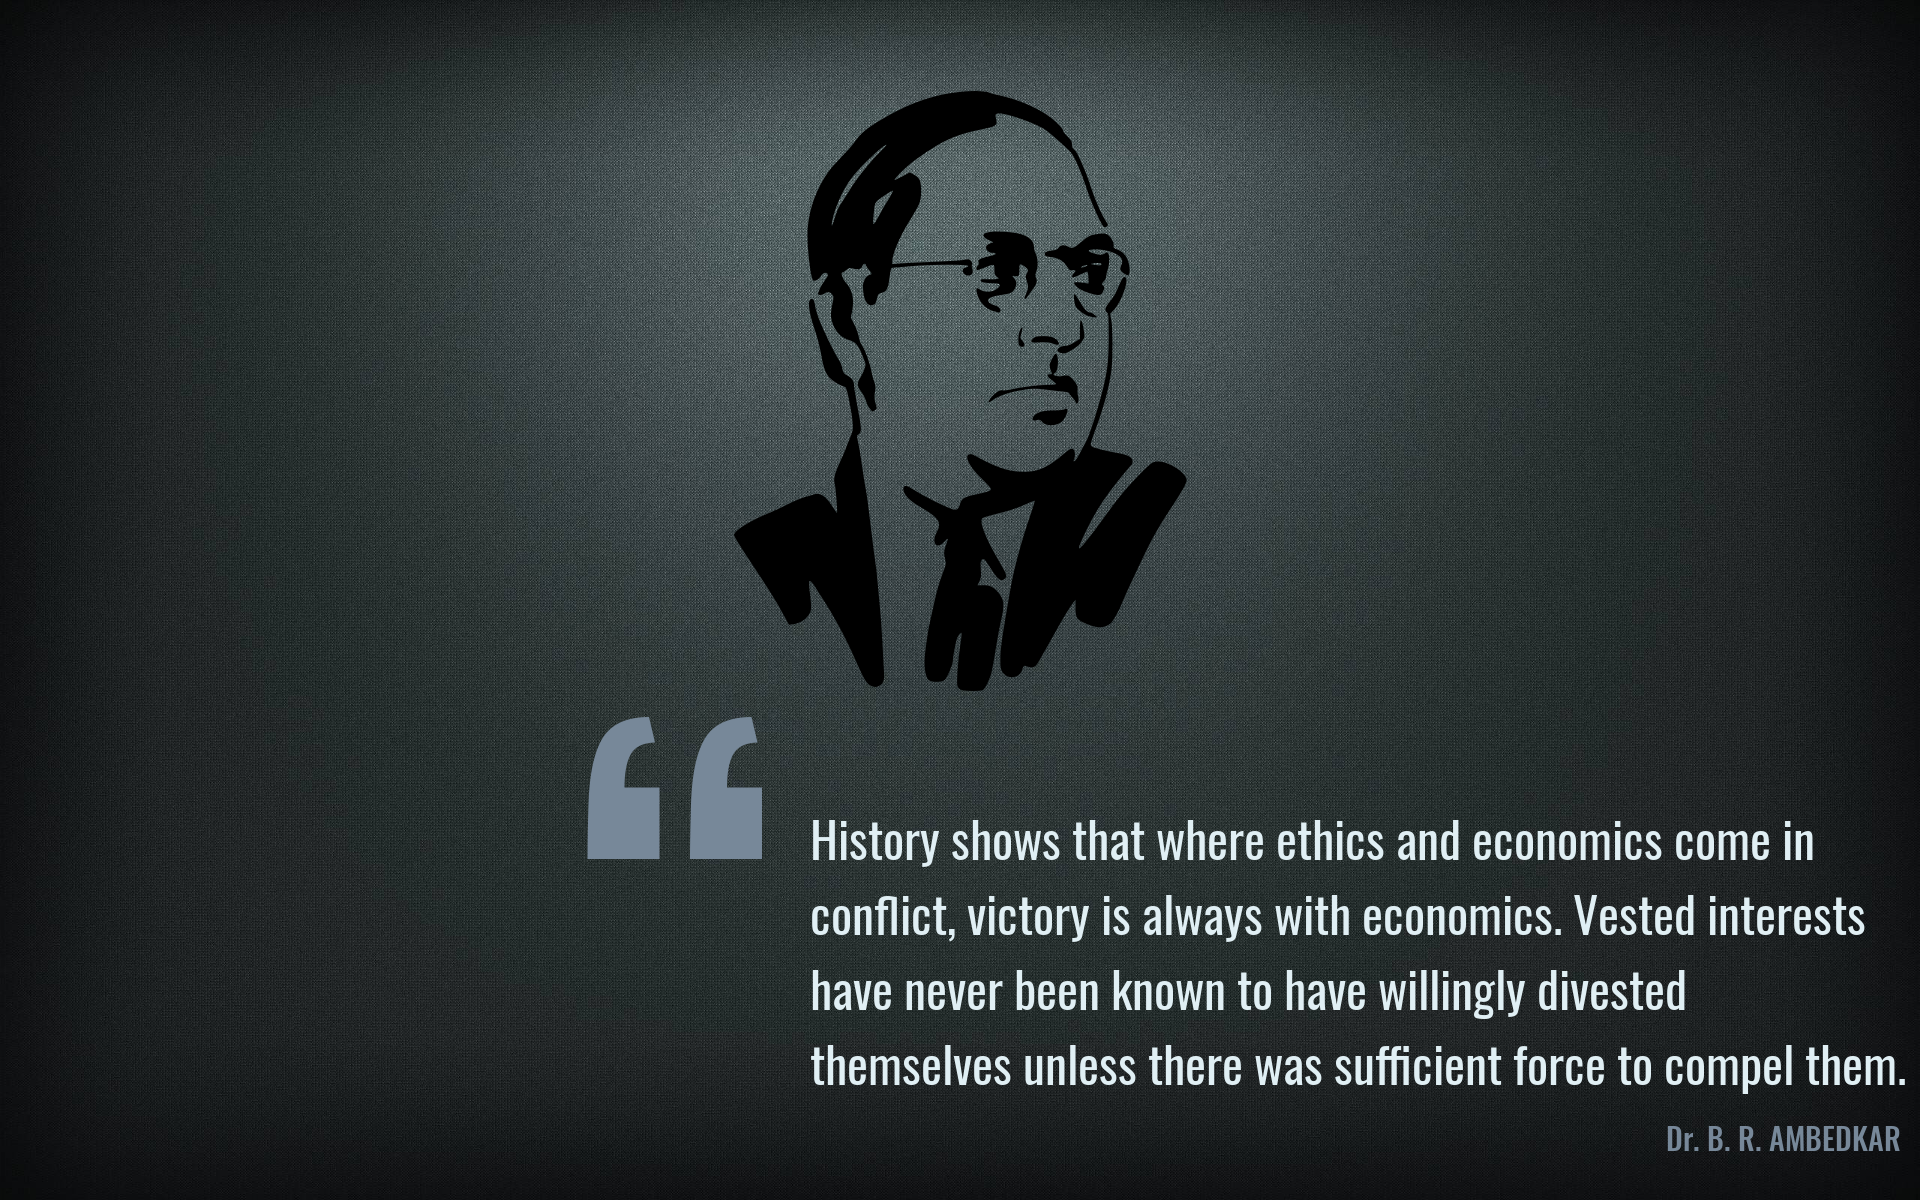 Marvelous Dr. Ambedkar HD Wallpaper And Quote